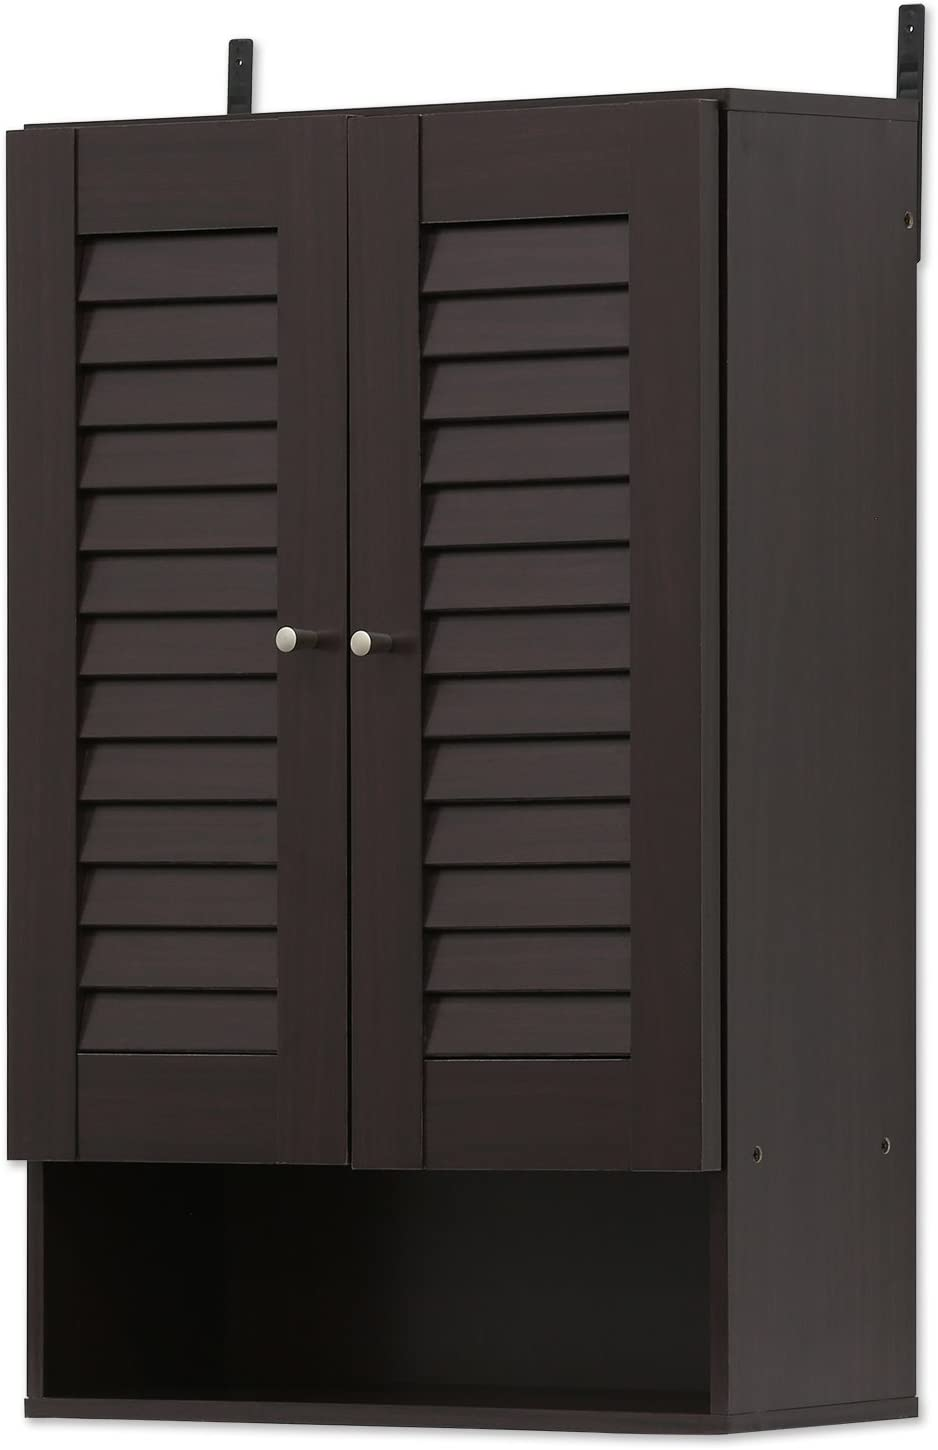 FURINNO Indo Max 54% OFF Double Outlet sale feature Door Wall Inch Cabinet Espresso 19.7